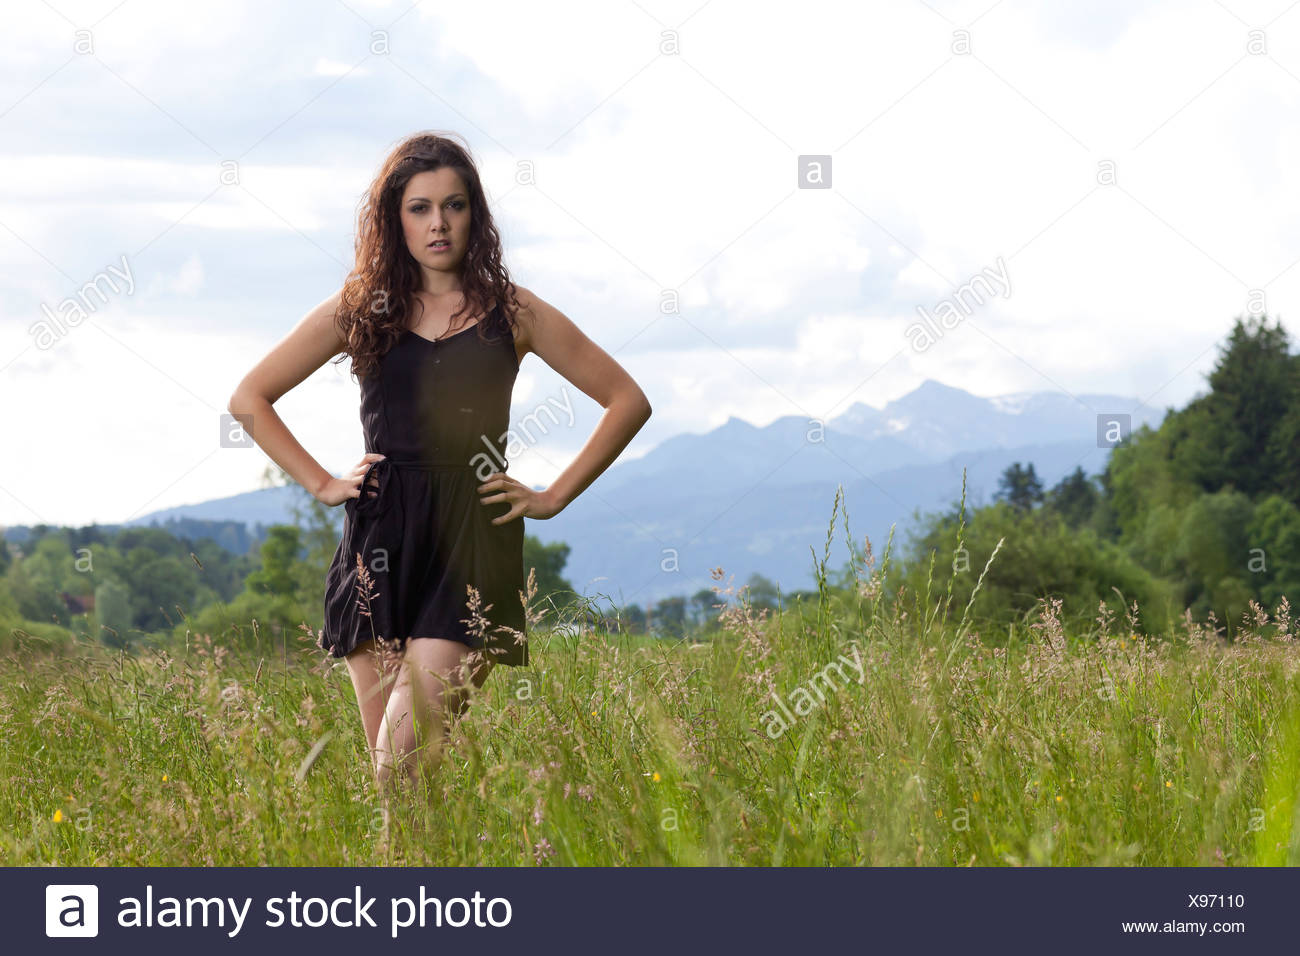 Young woman posing in a short black dress in the long grass - Stock Image